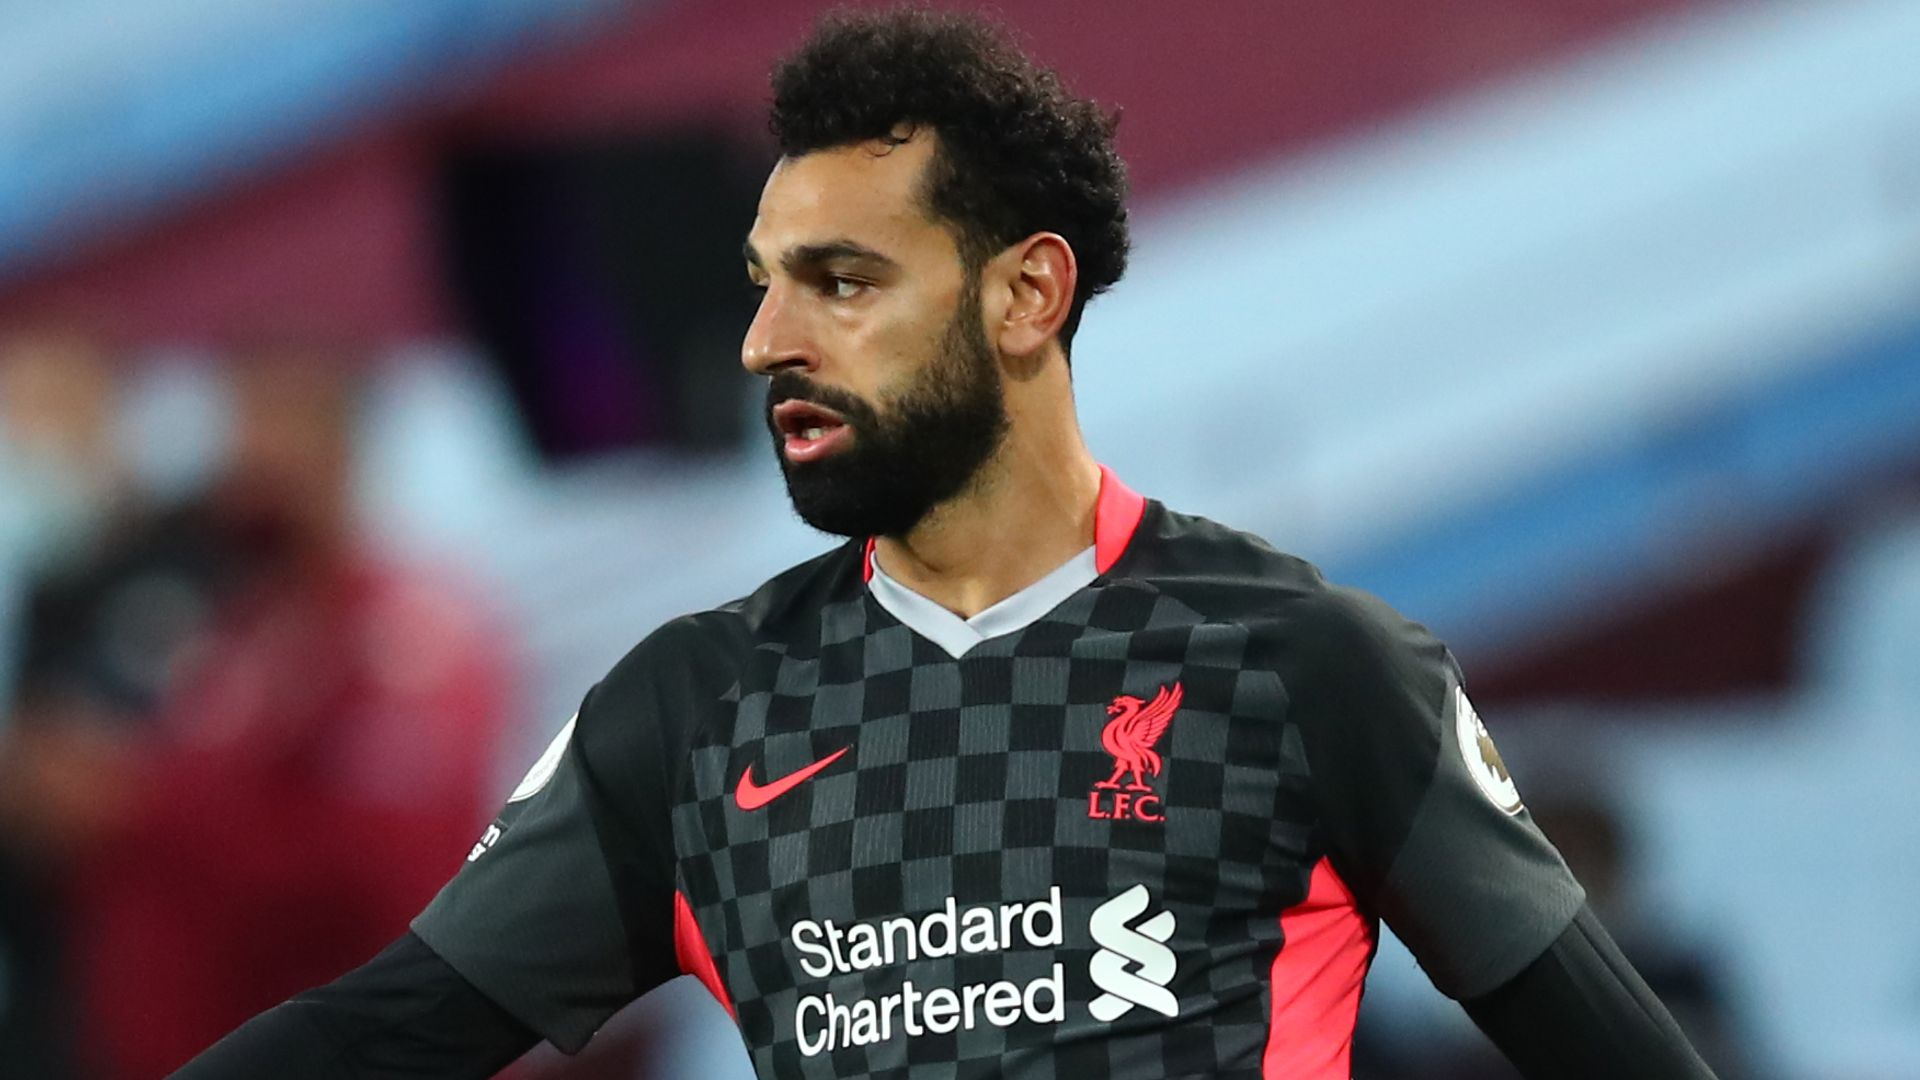 West Ham fan banned three years for Salah racial abuse